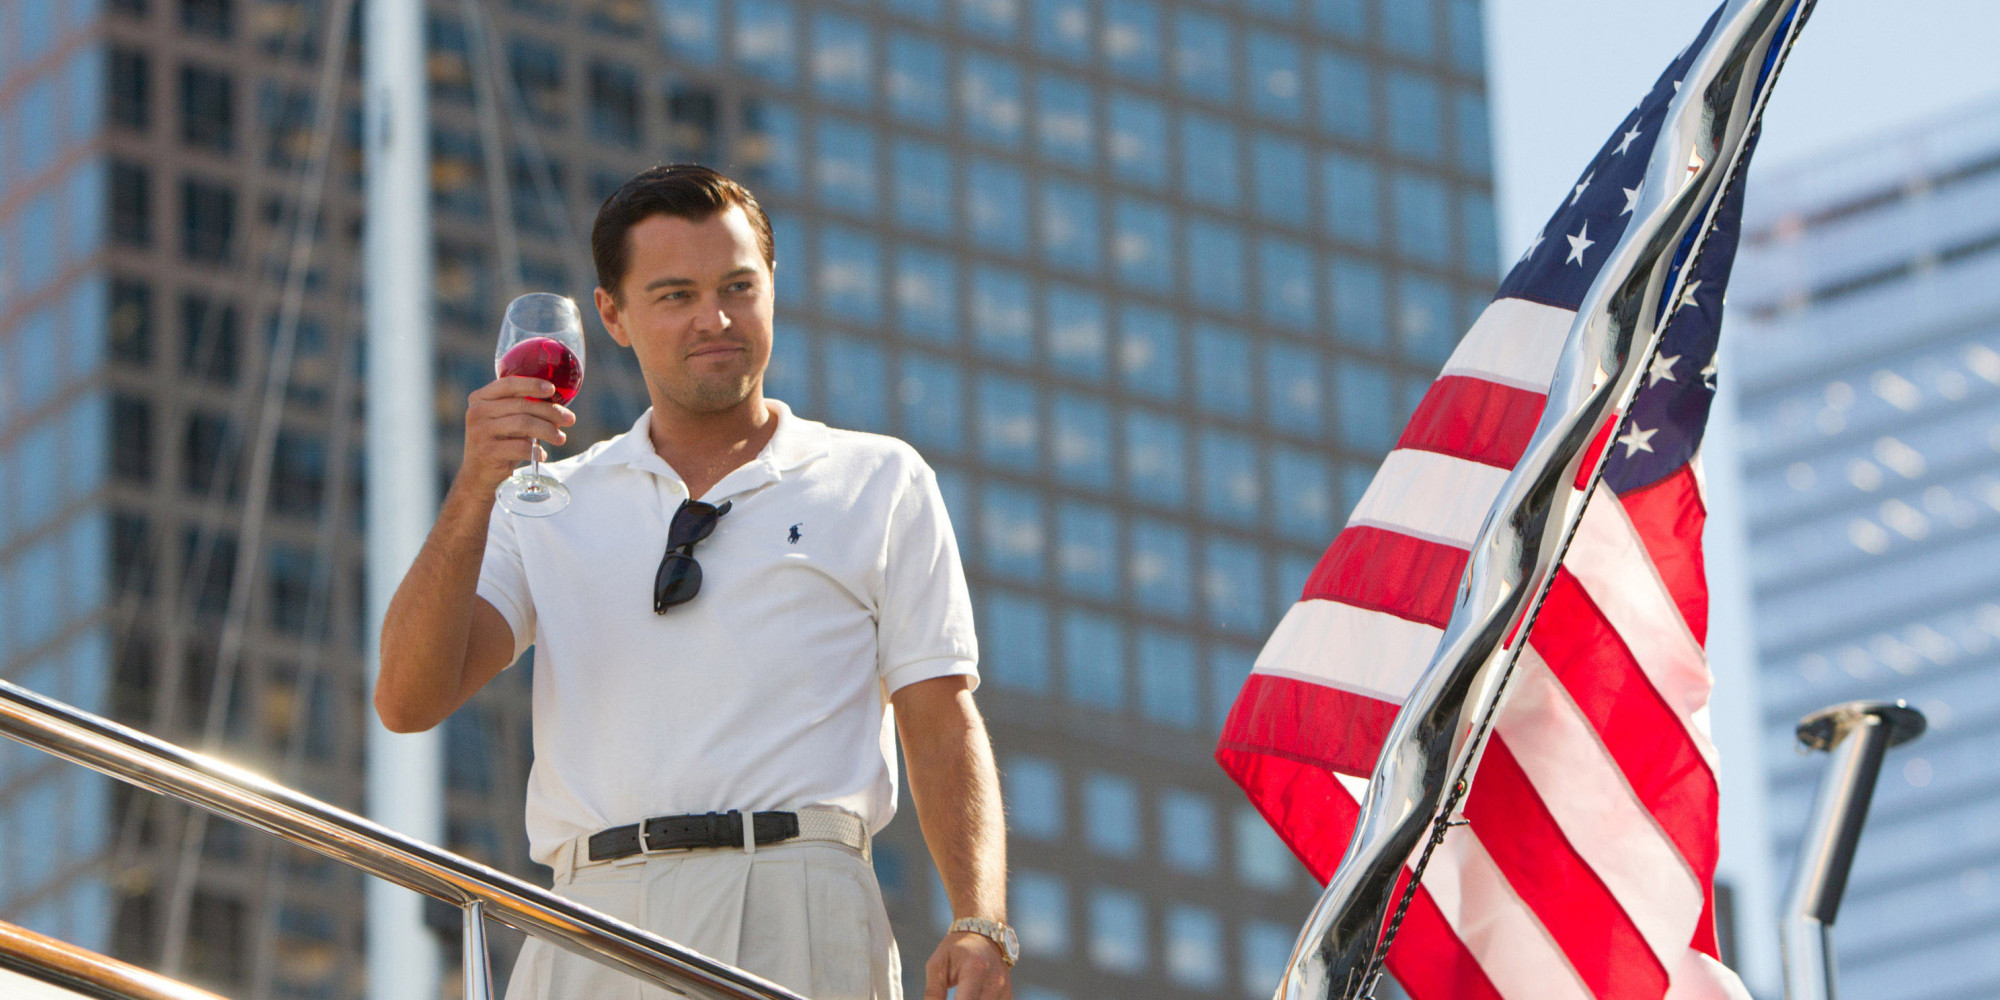 THE WOLF OF WALLSTREET biography comedy drama   f